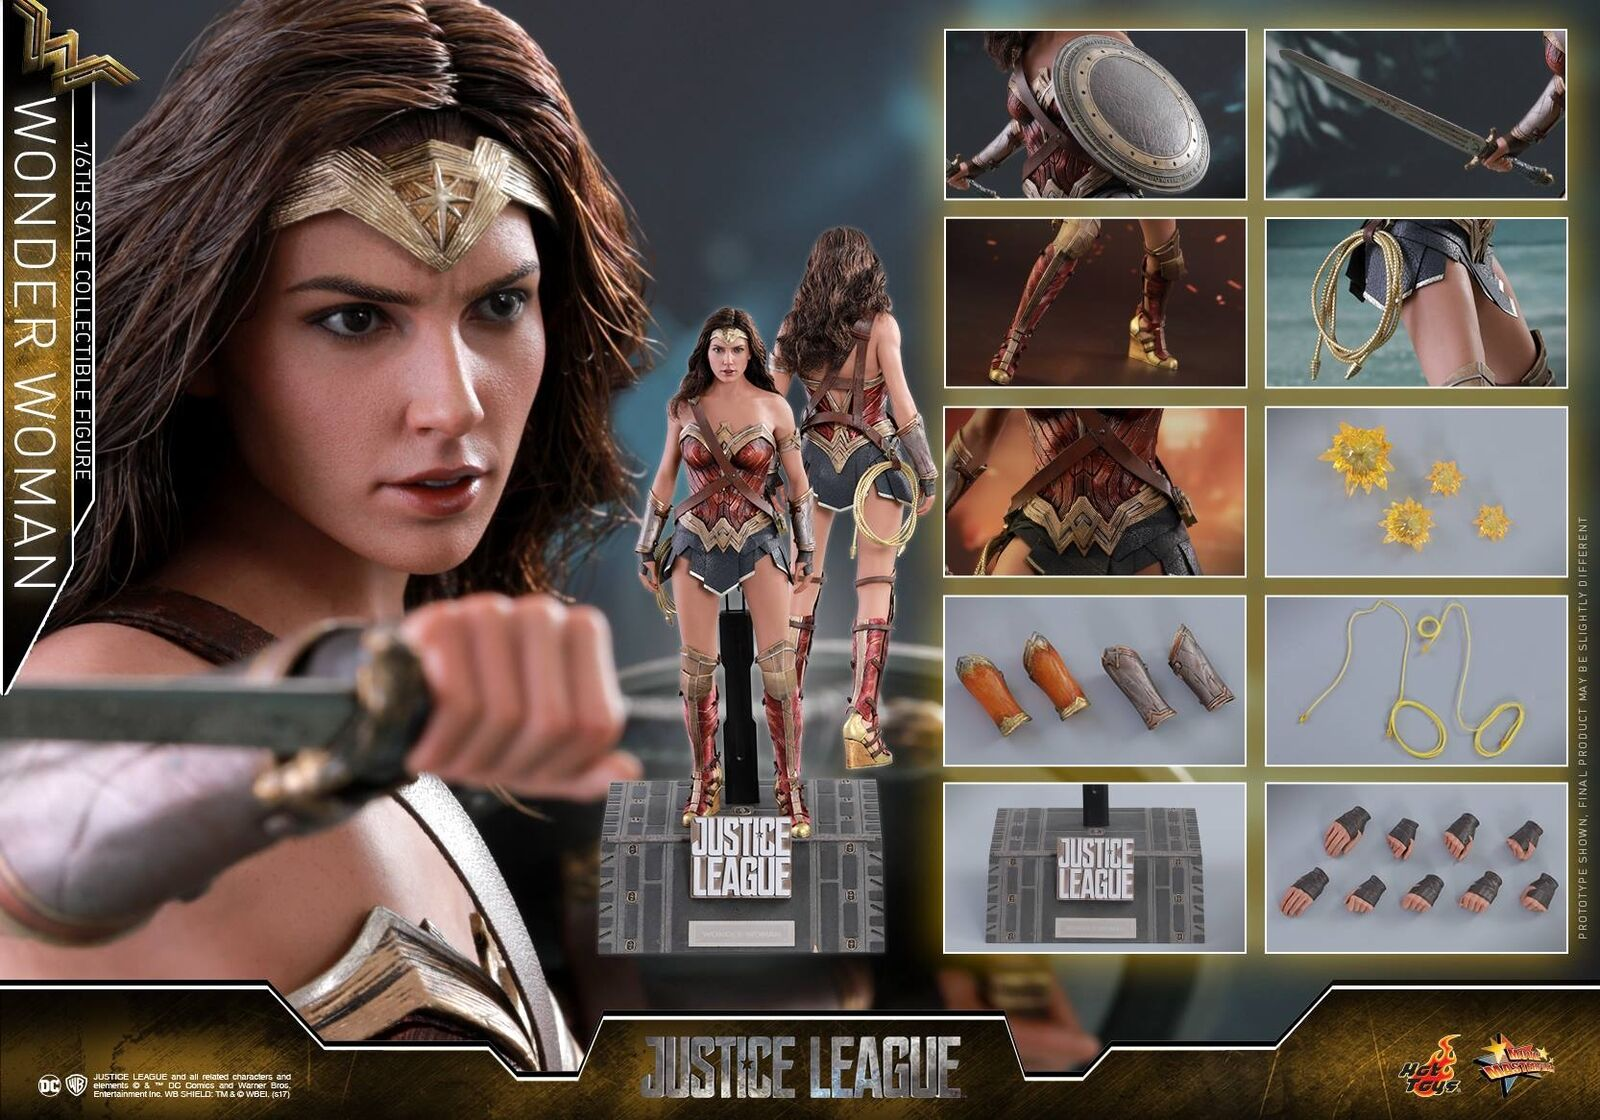 HOT TOYS 1 6 DC JUSTICE LEAGUE MMS450 WONDER WOMAN DIANA ACTION FIGURE